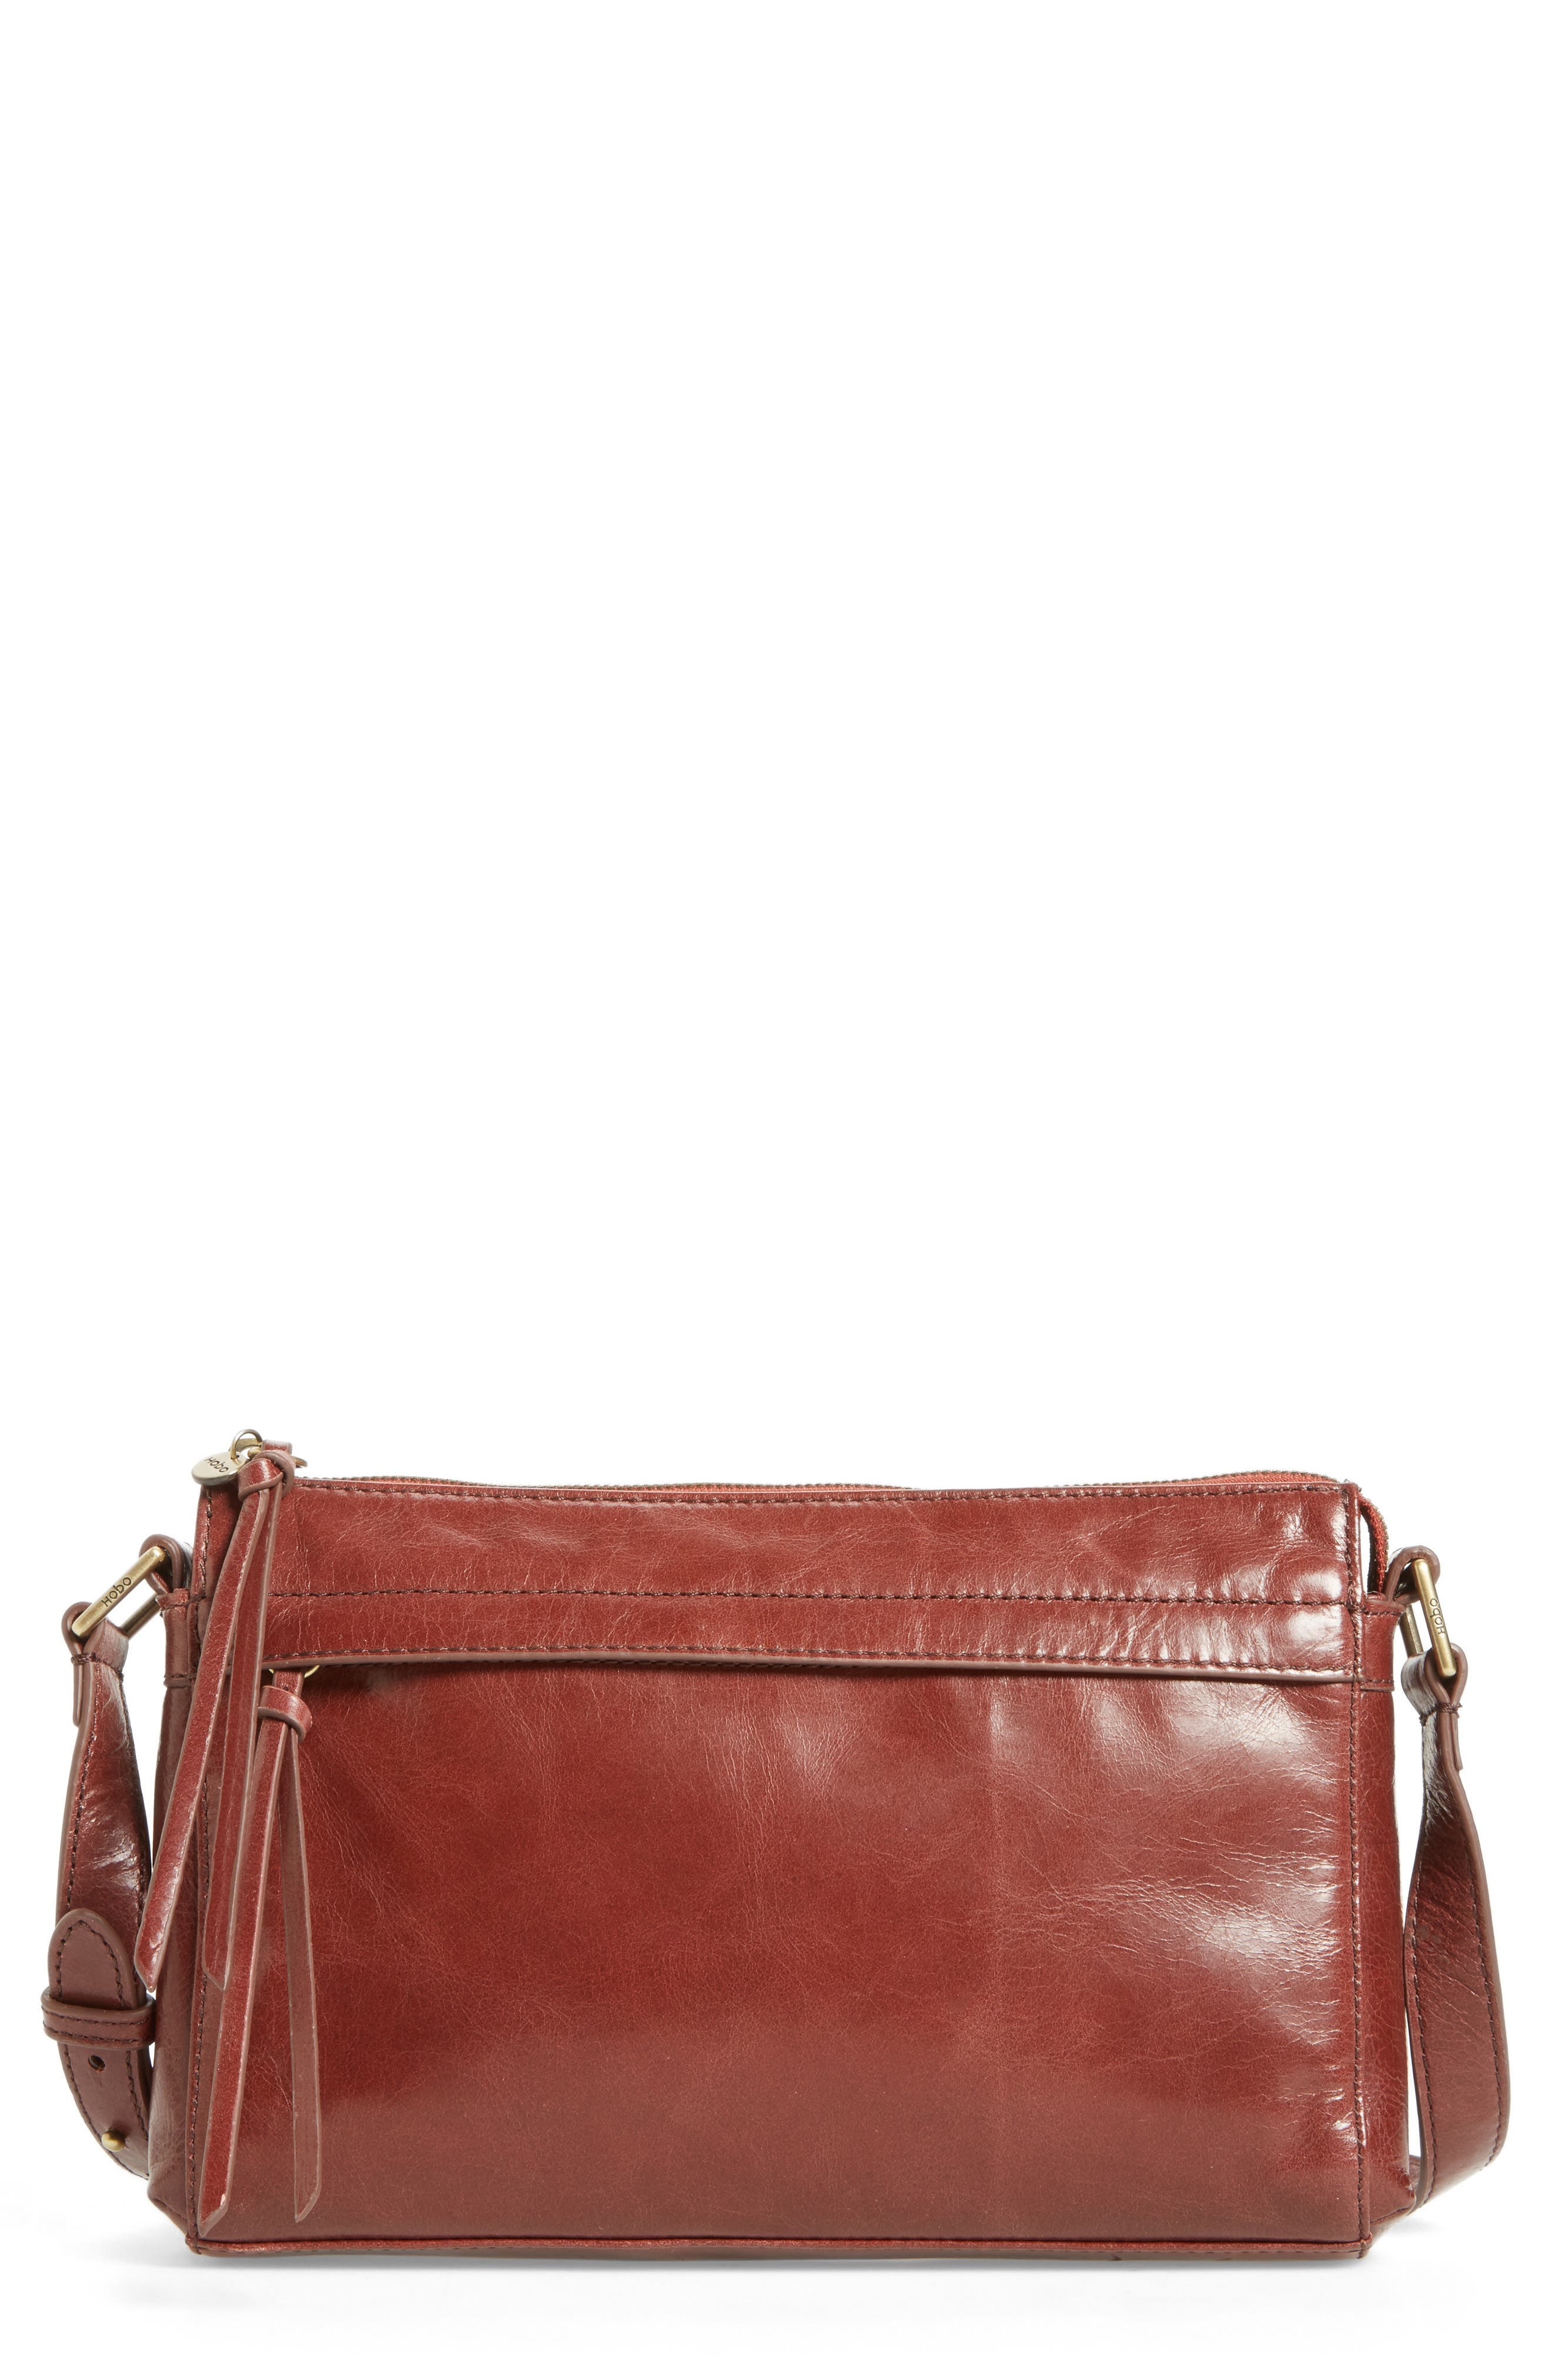 Tobey Leather Crossbody Bag,                             Alternate thumbnail 14, color,